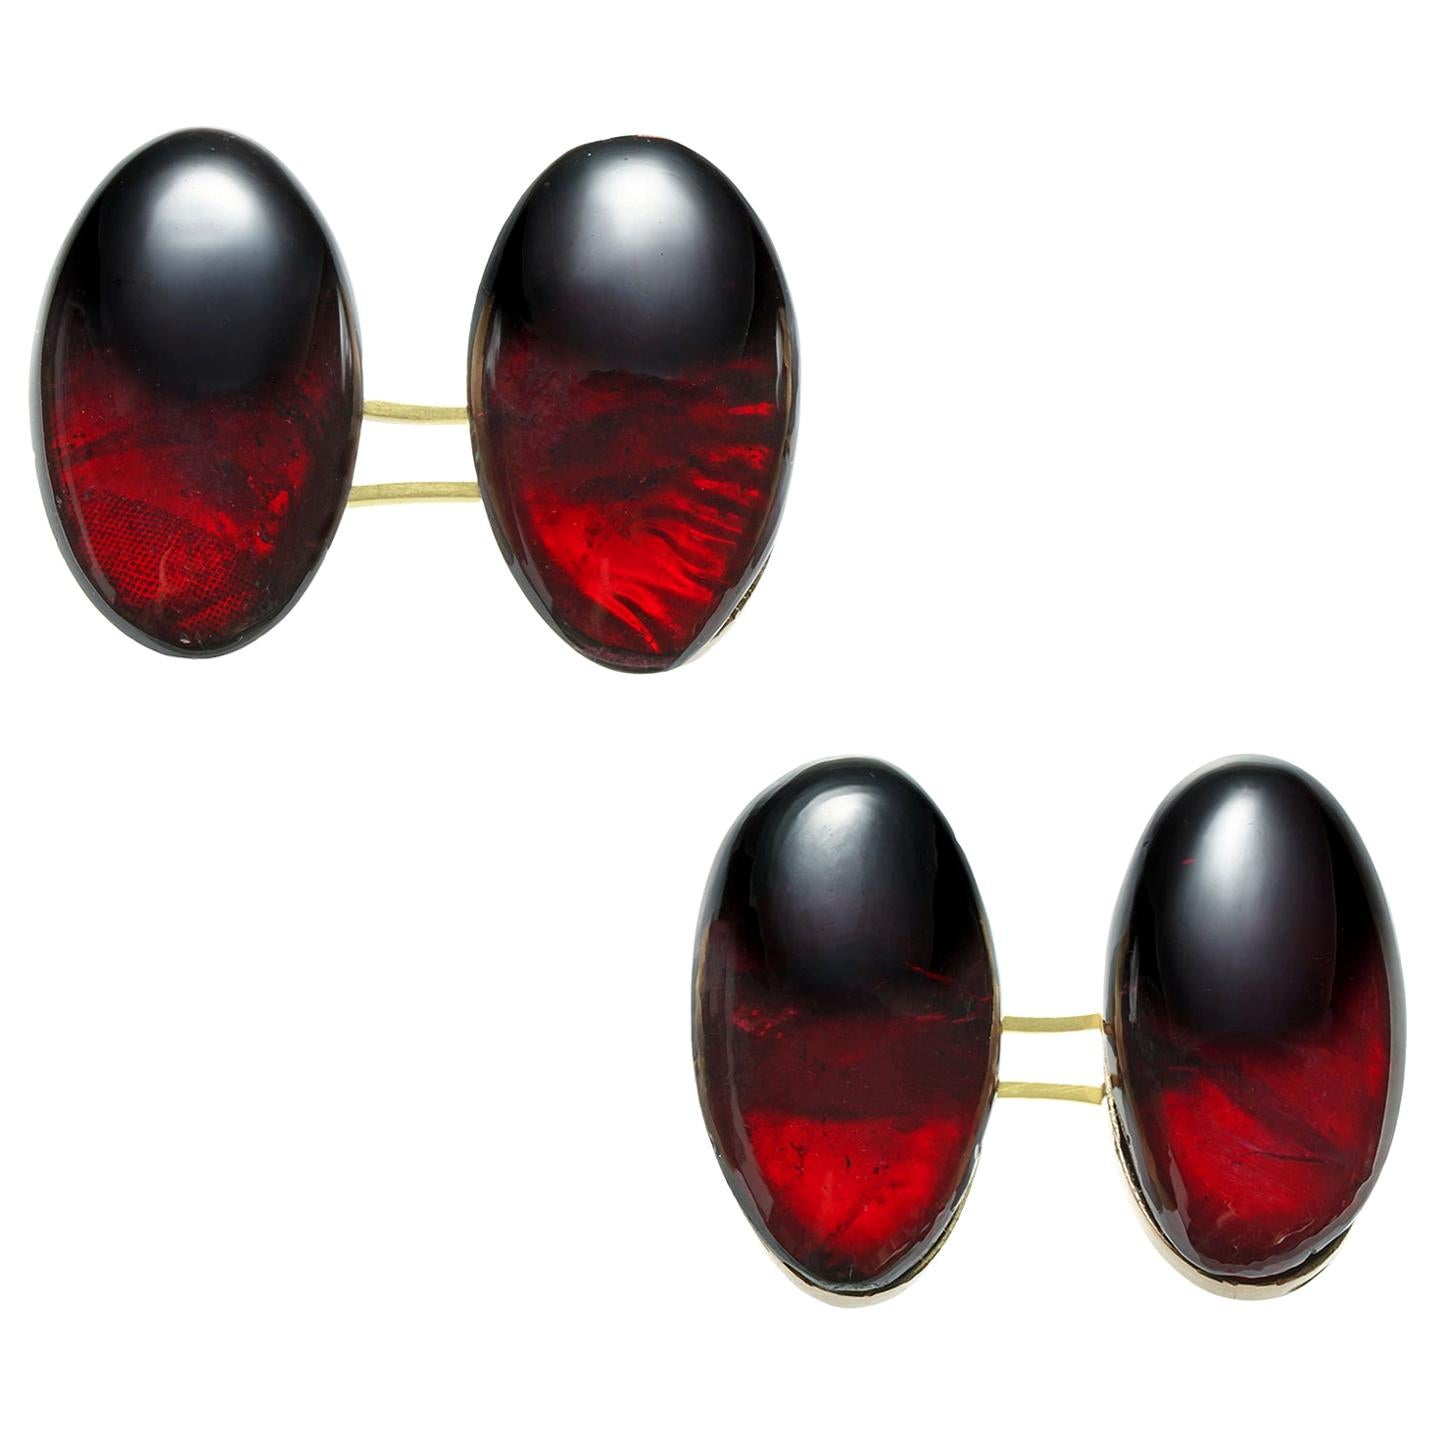 Pair of Antique Garnet Cufflinks